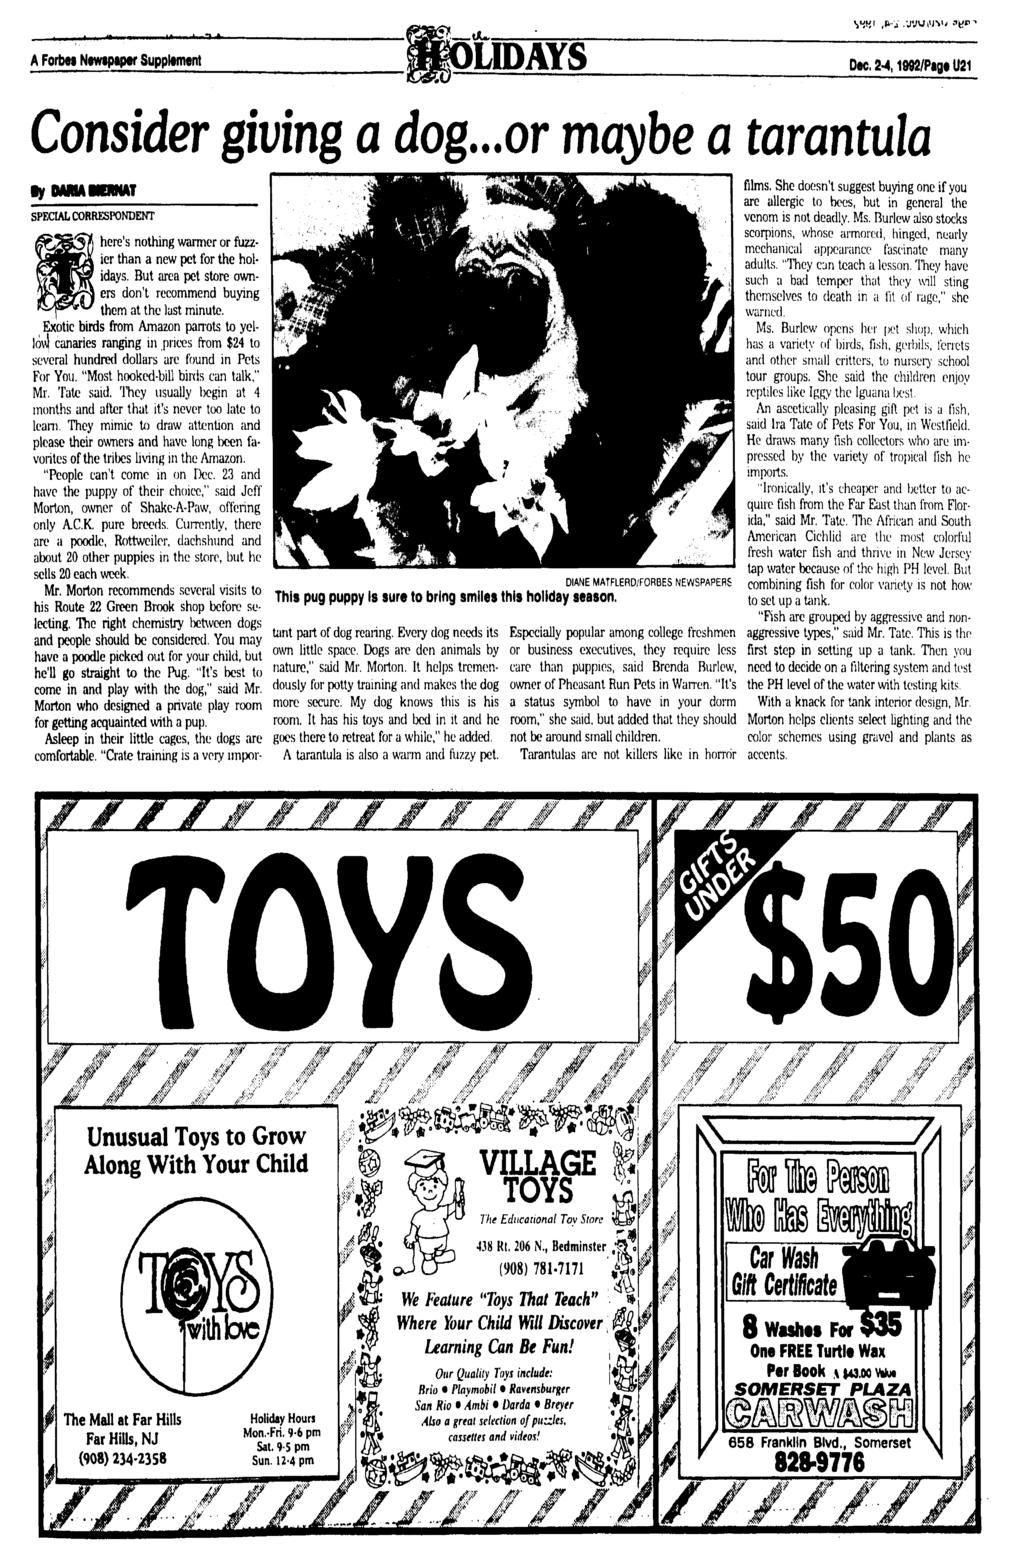 A Forbes Nmpipw Supplement LIDAYS Dec, 2-4,1992/Pagt U21 Consider giving a dog.